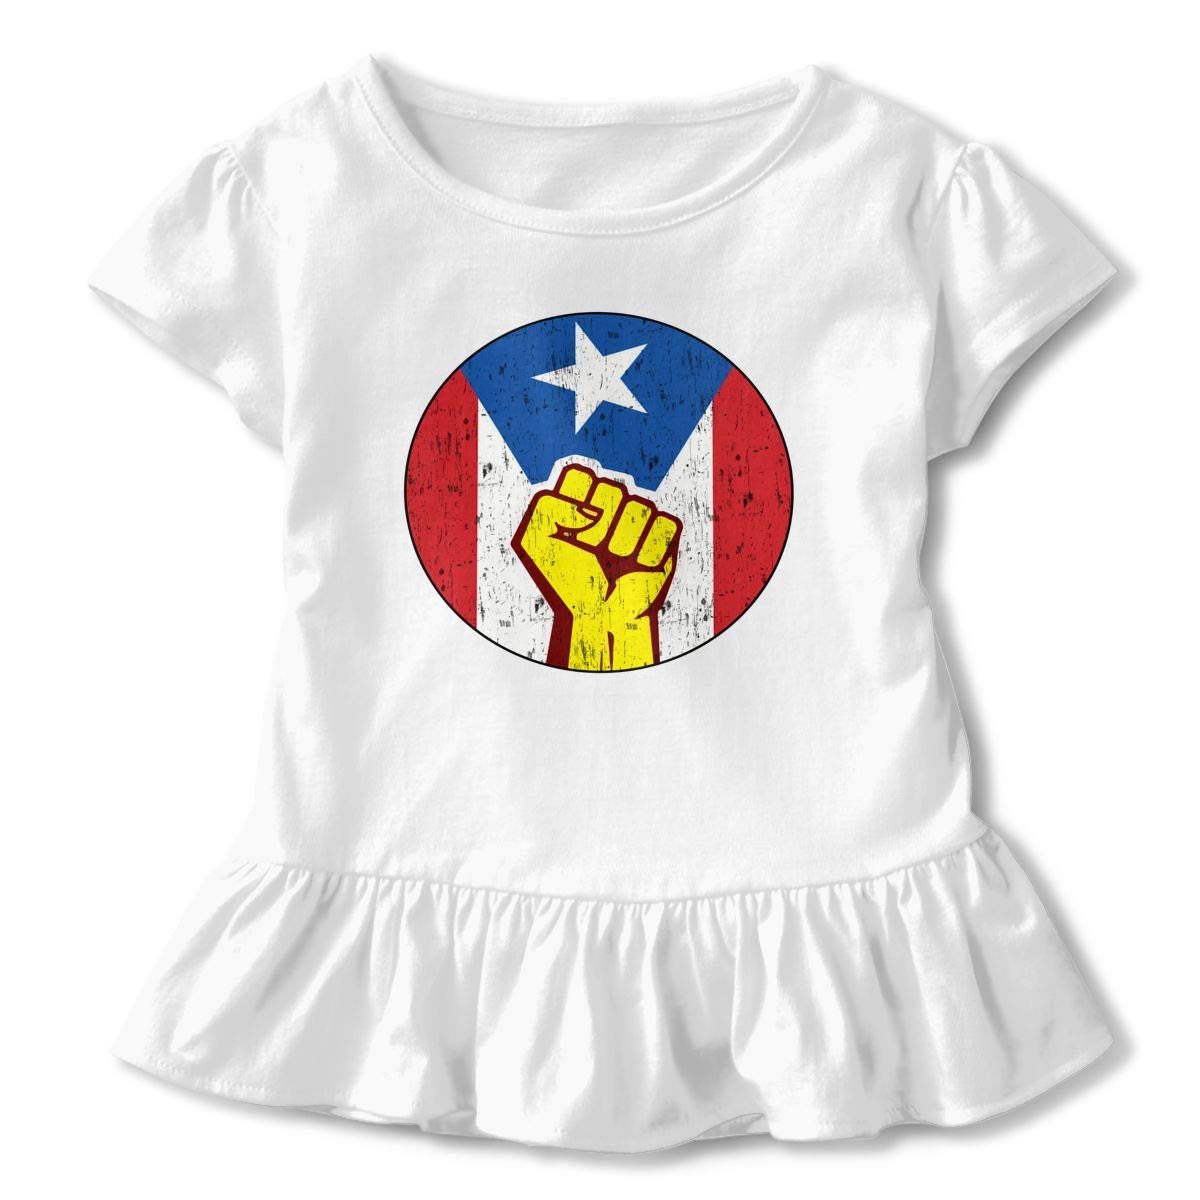 Retro Puerto Rico Flag Pin Unidos Donation for Hurricane Maria Relief Toddler Baby Girls Short Sleeve Ruffle T-Shirt